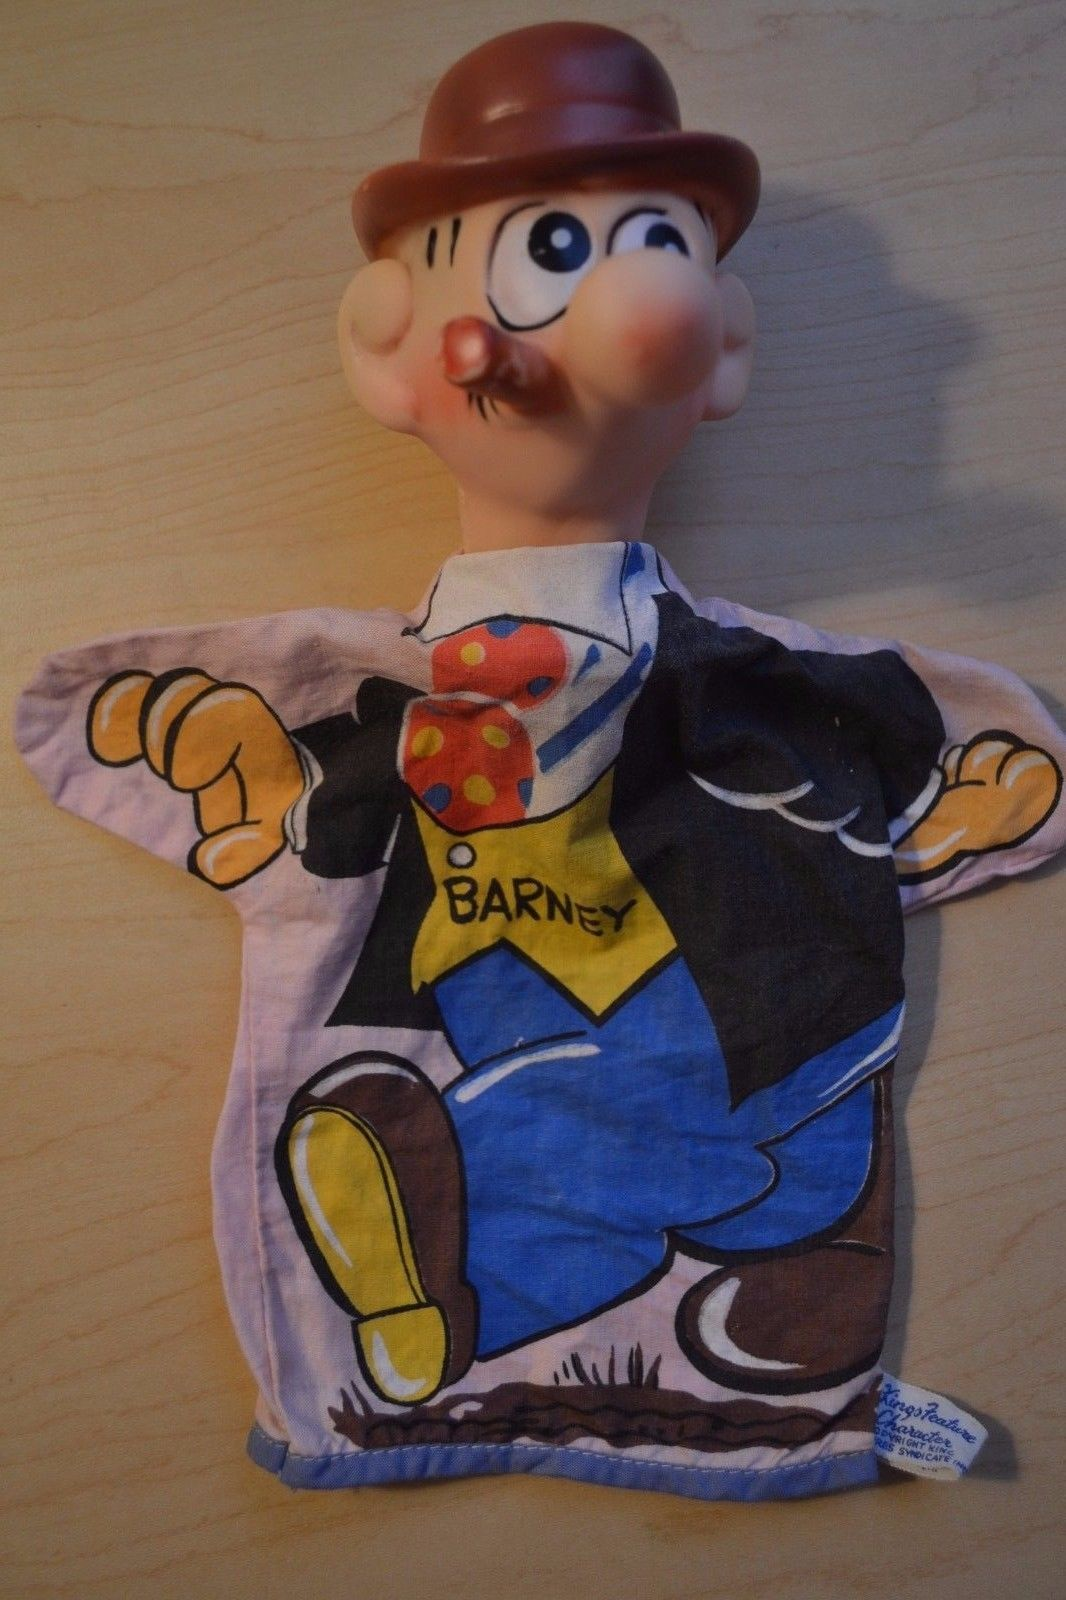 Barney Google hand puppet by Gund, early 1960s.